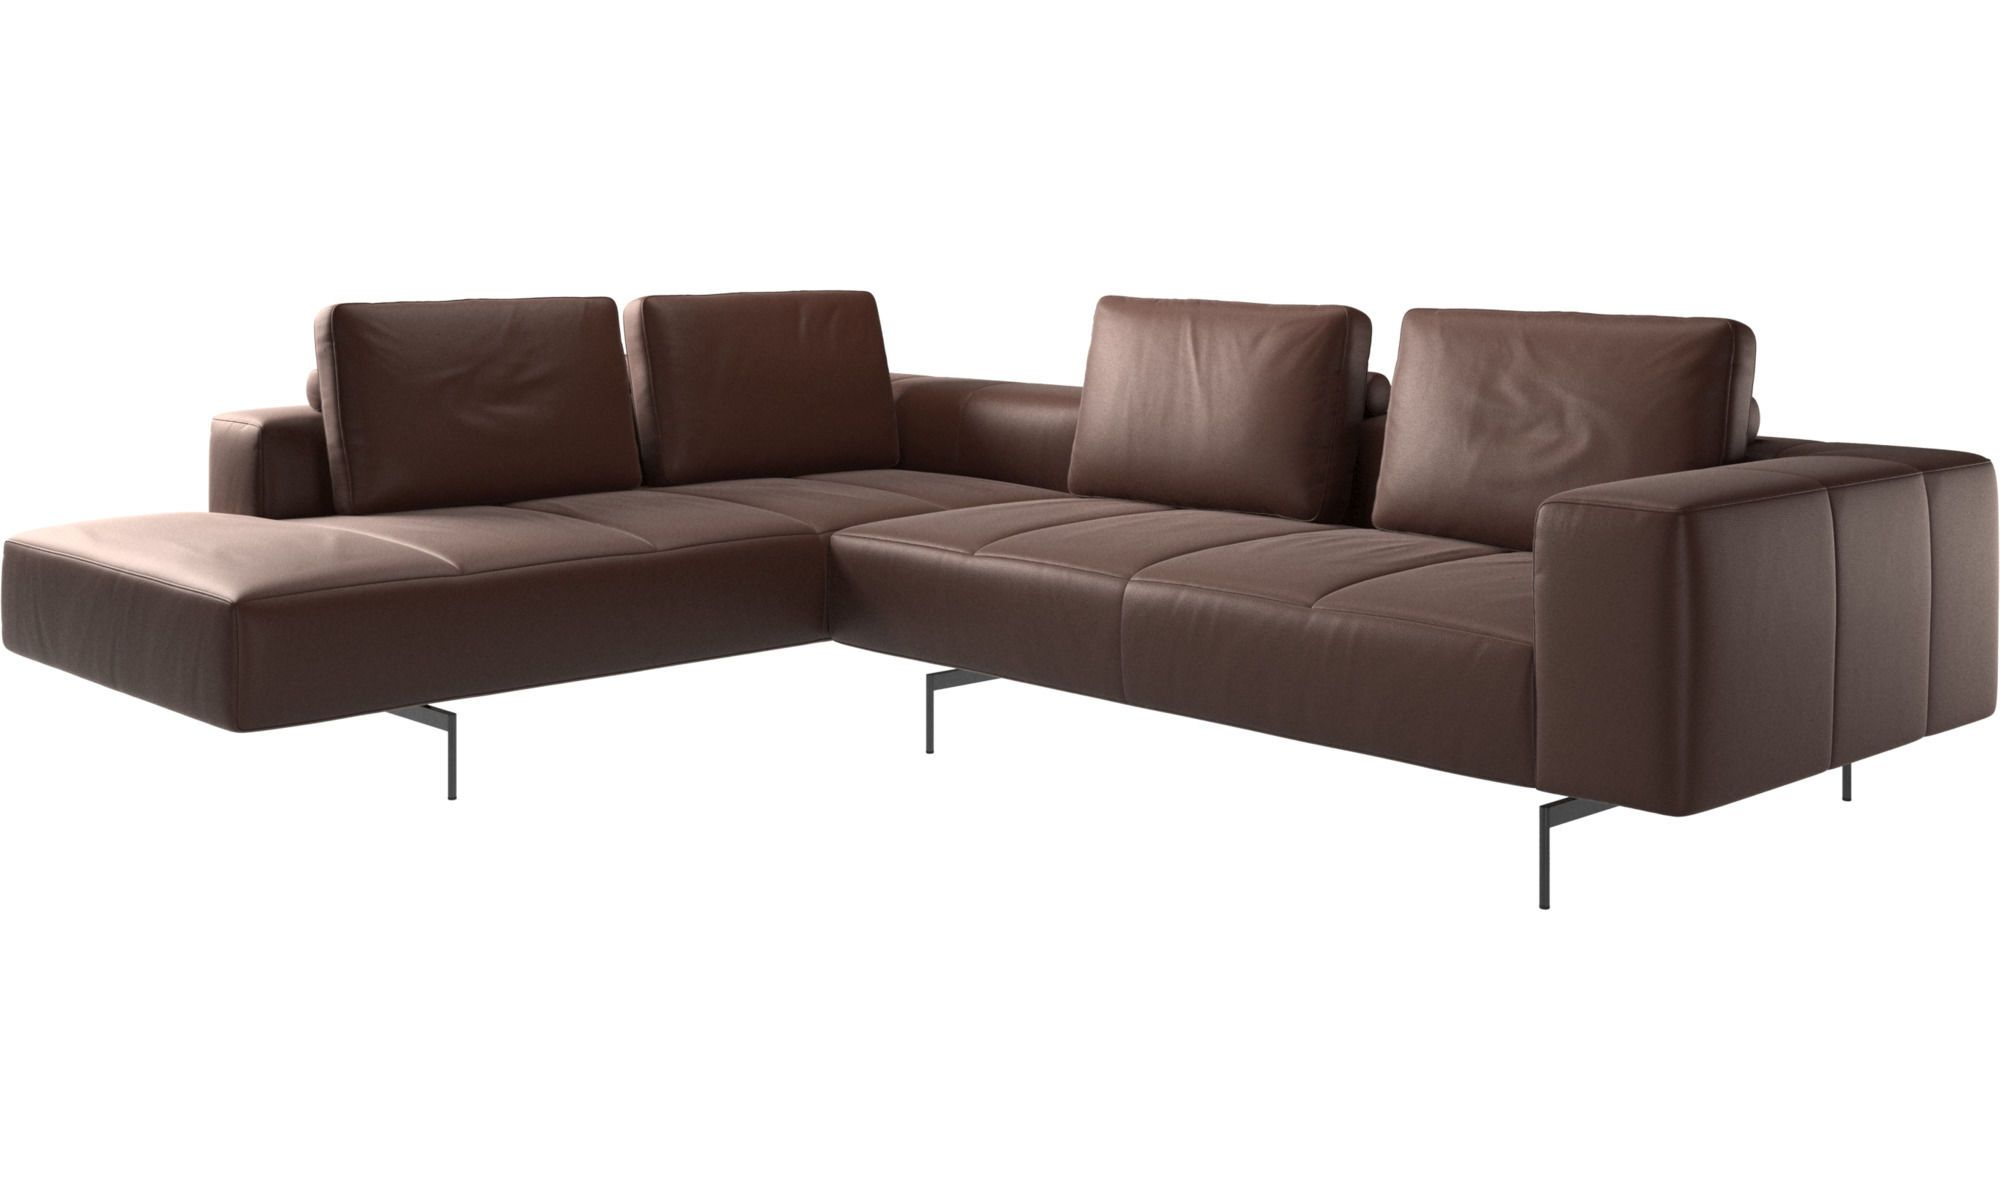 Modular Sofas Amsterdam Corner Sofa With Lounging Unit In 2020 Corner Sofa Leather Corner Sofa Sofa